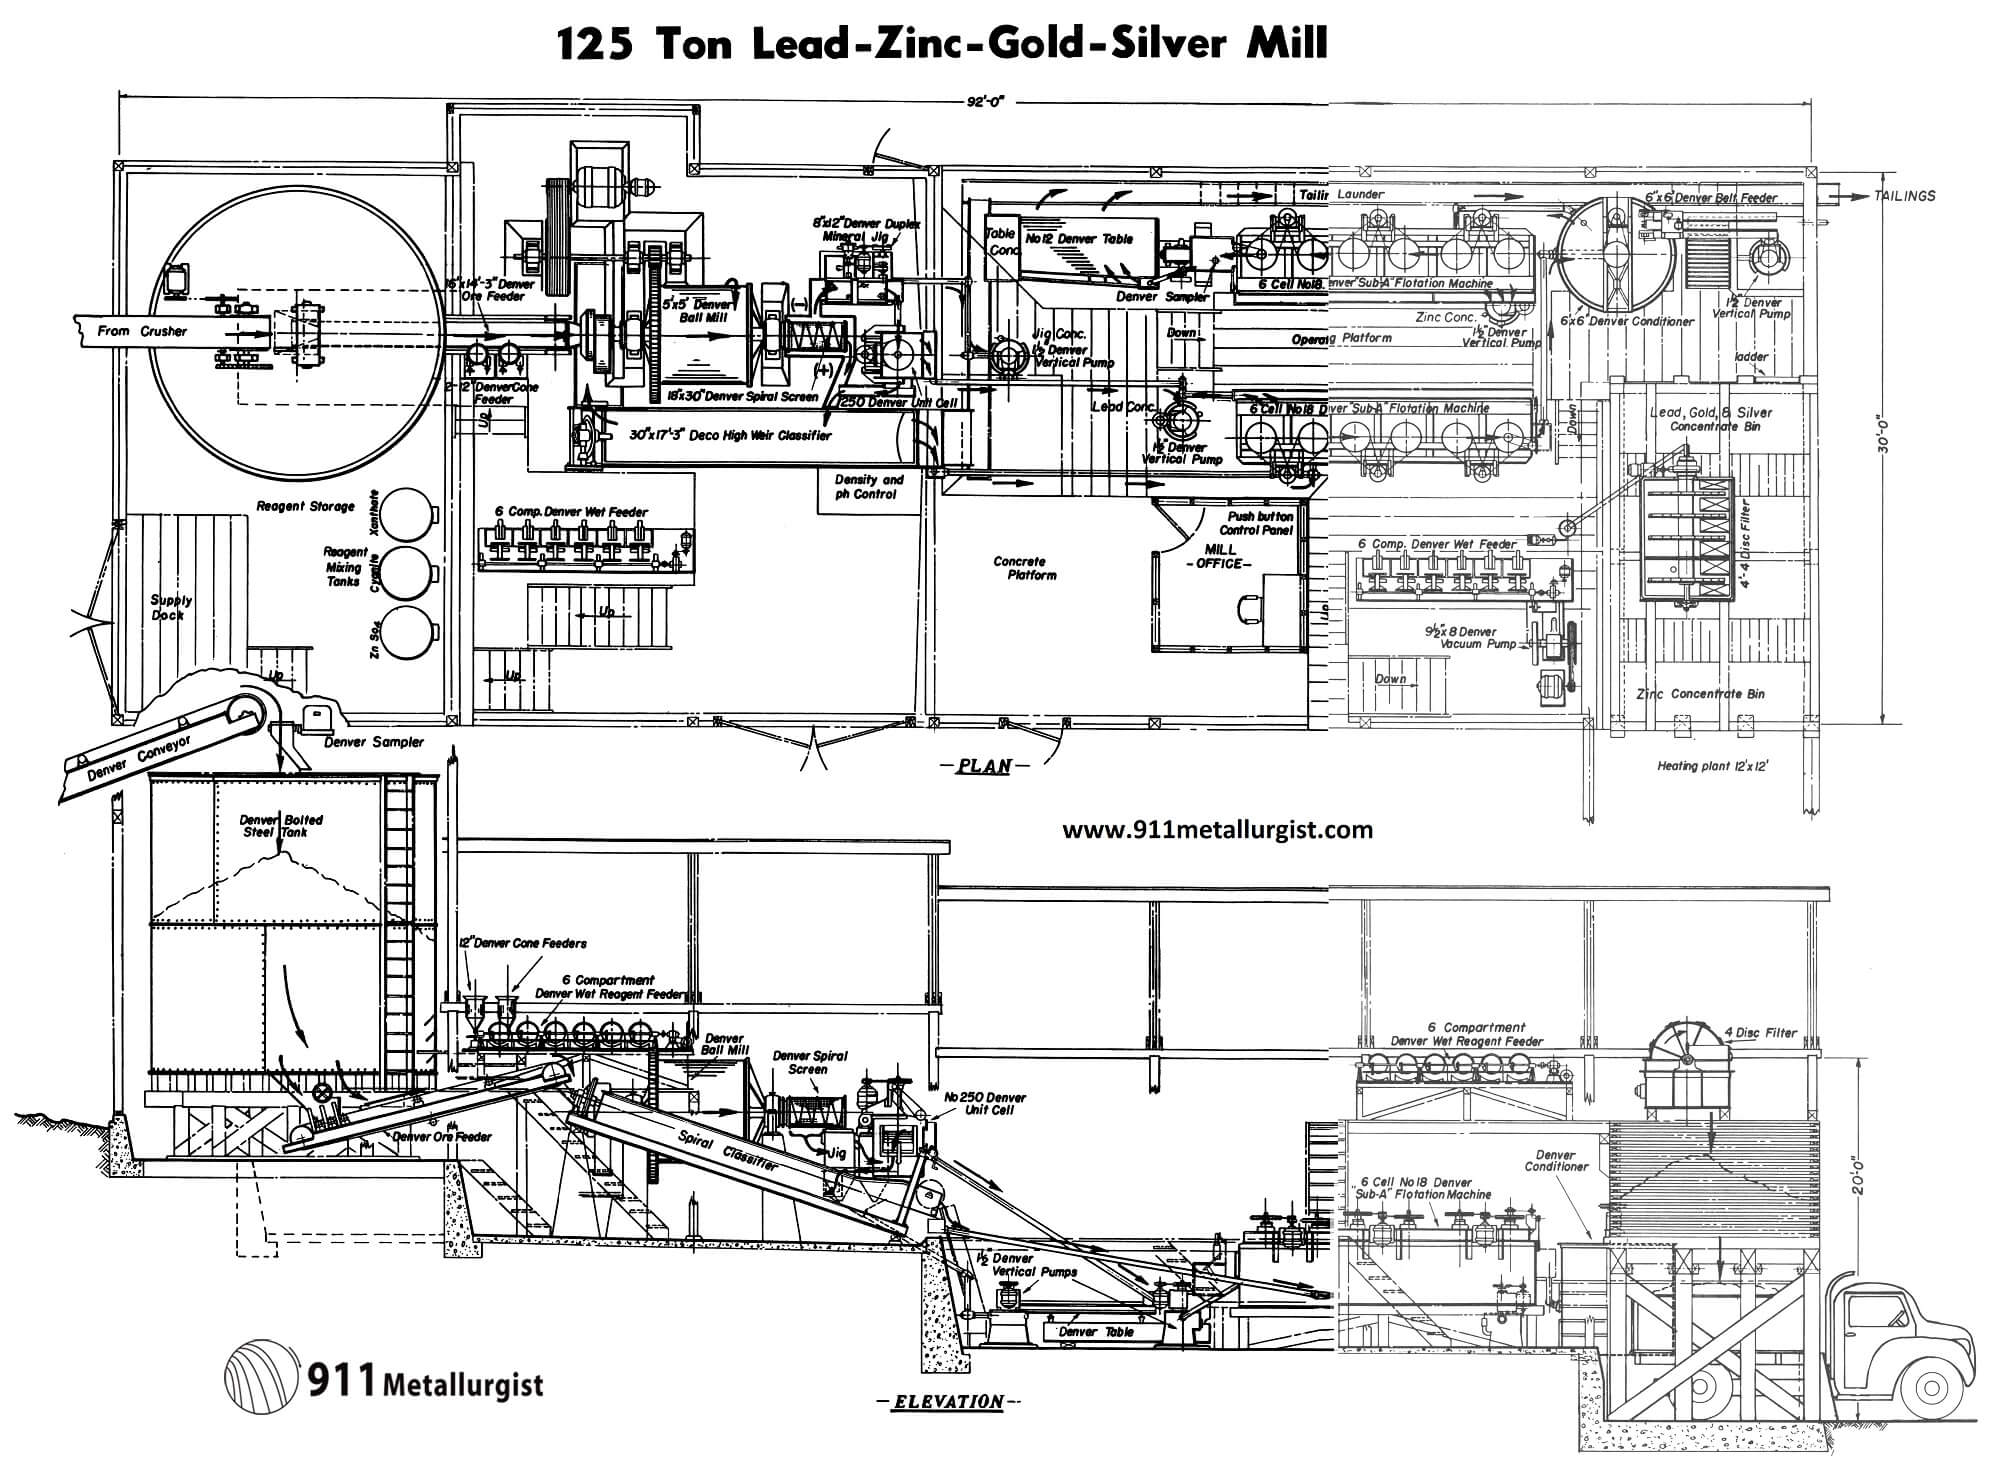 Layout of a Small Lead Zinc Silver Gold Processing Plant